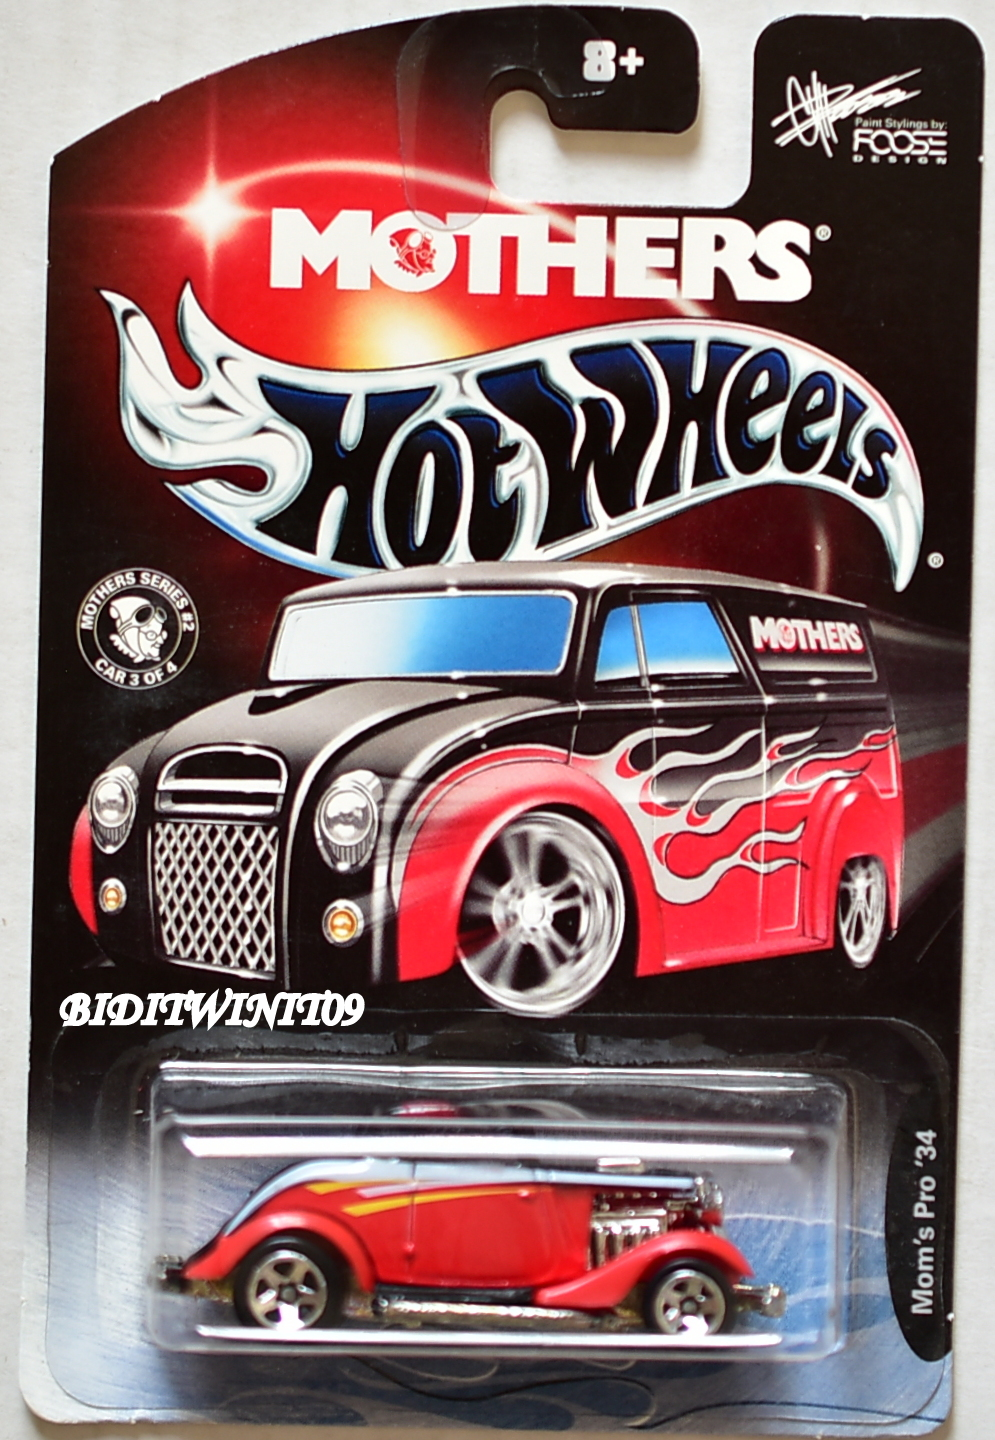 HOT WHEELS MOTHERS MOM'S PRO '34 FOOSE DESIGN